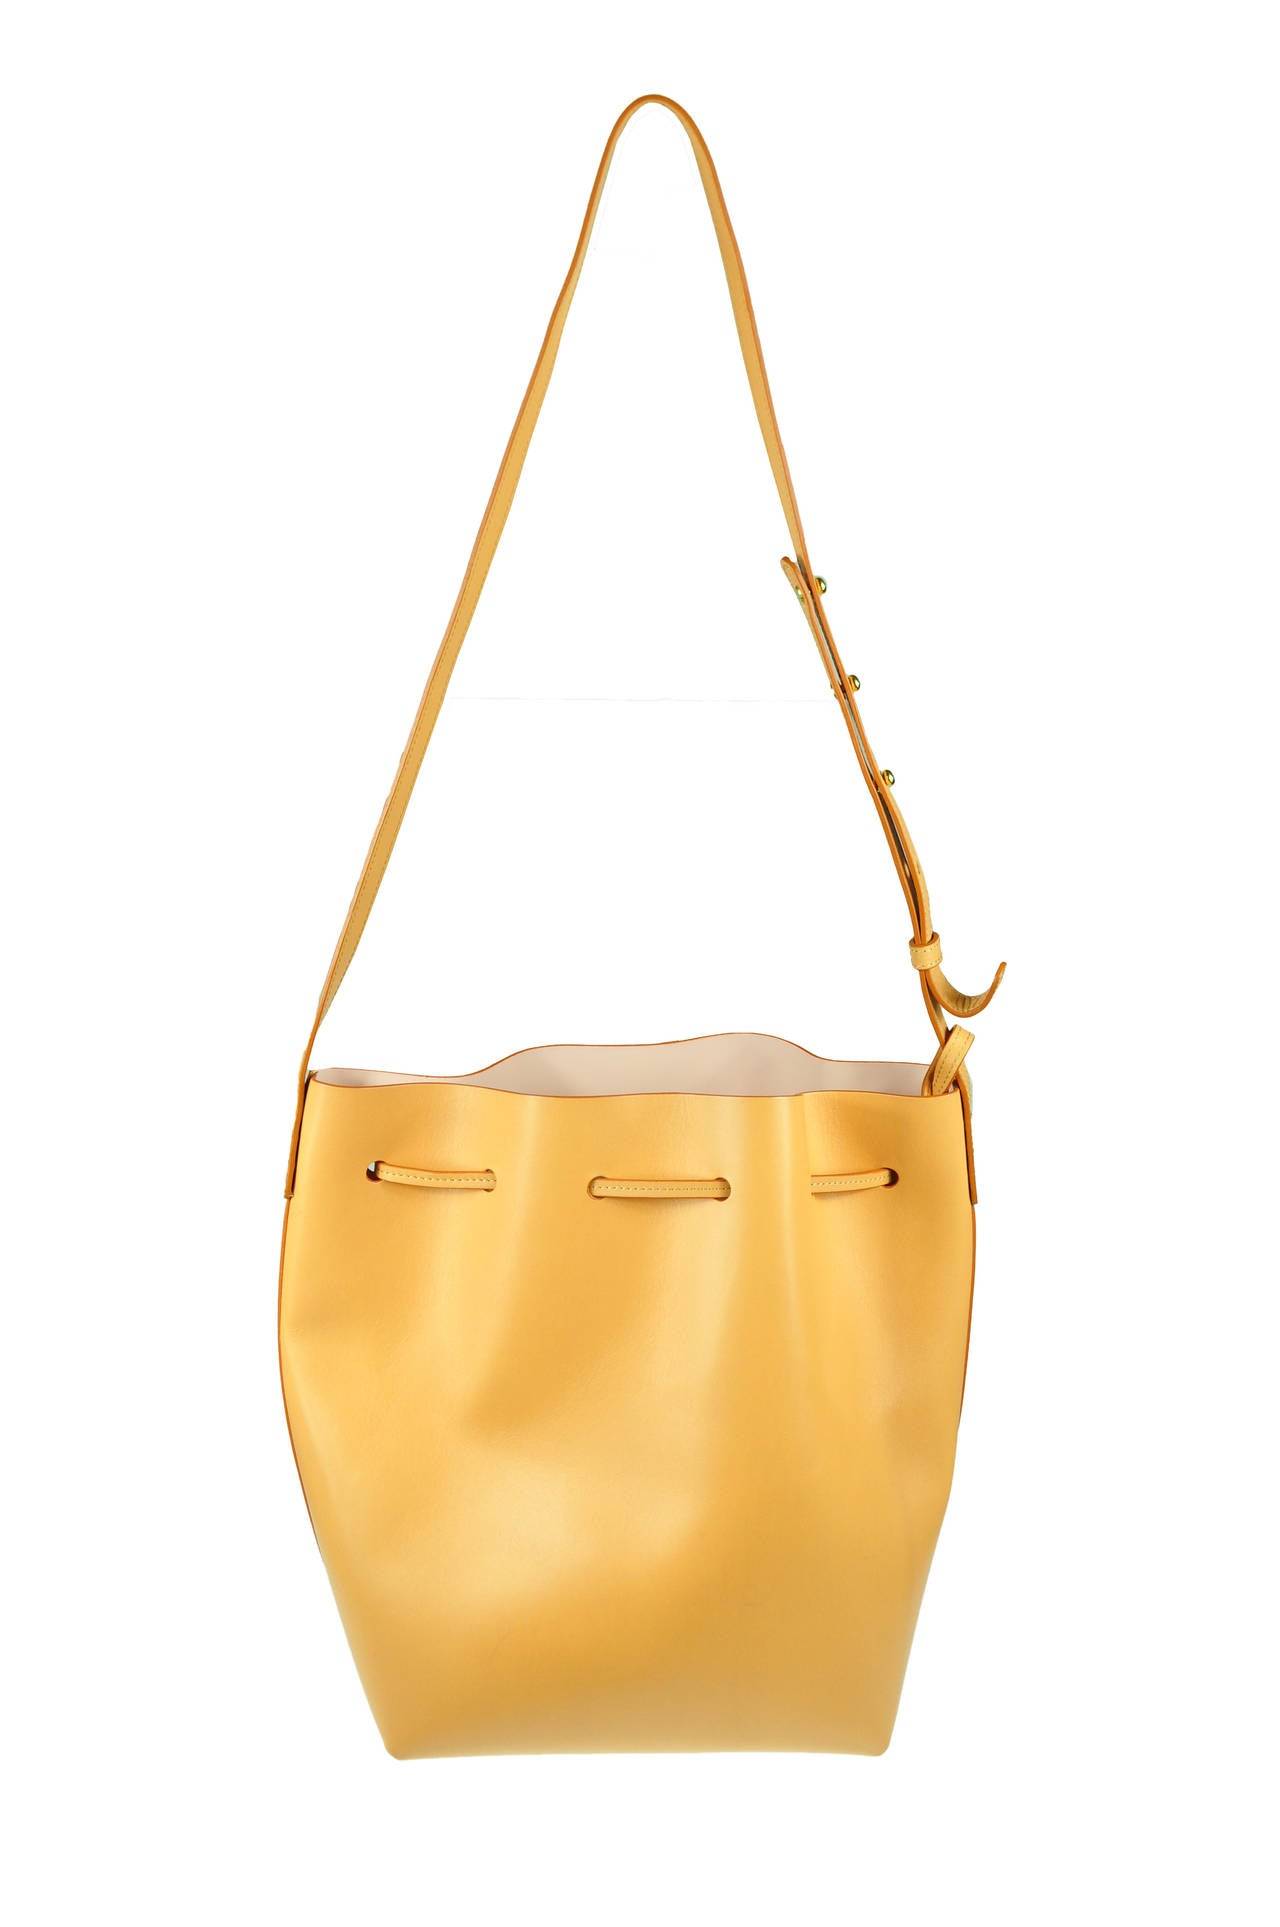 mansur gavriel cammello bucket bag new at 1stdibs. Black Bedroom Furniture Sets. Home Design Ideas